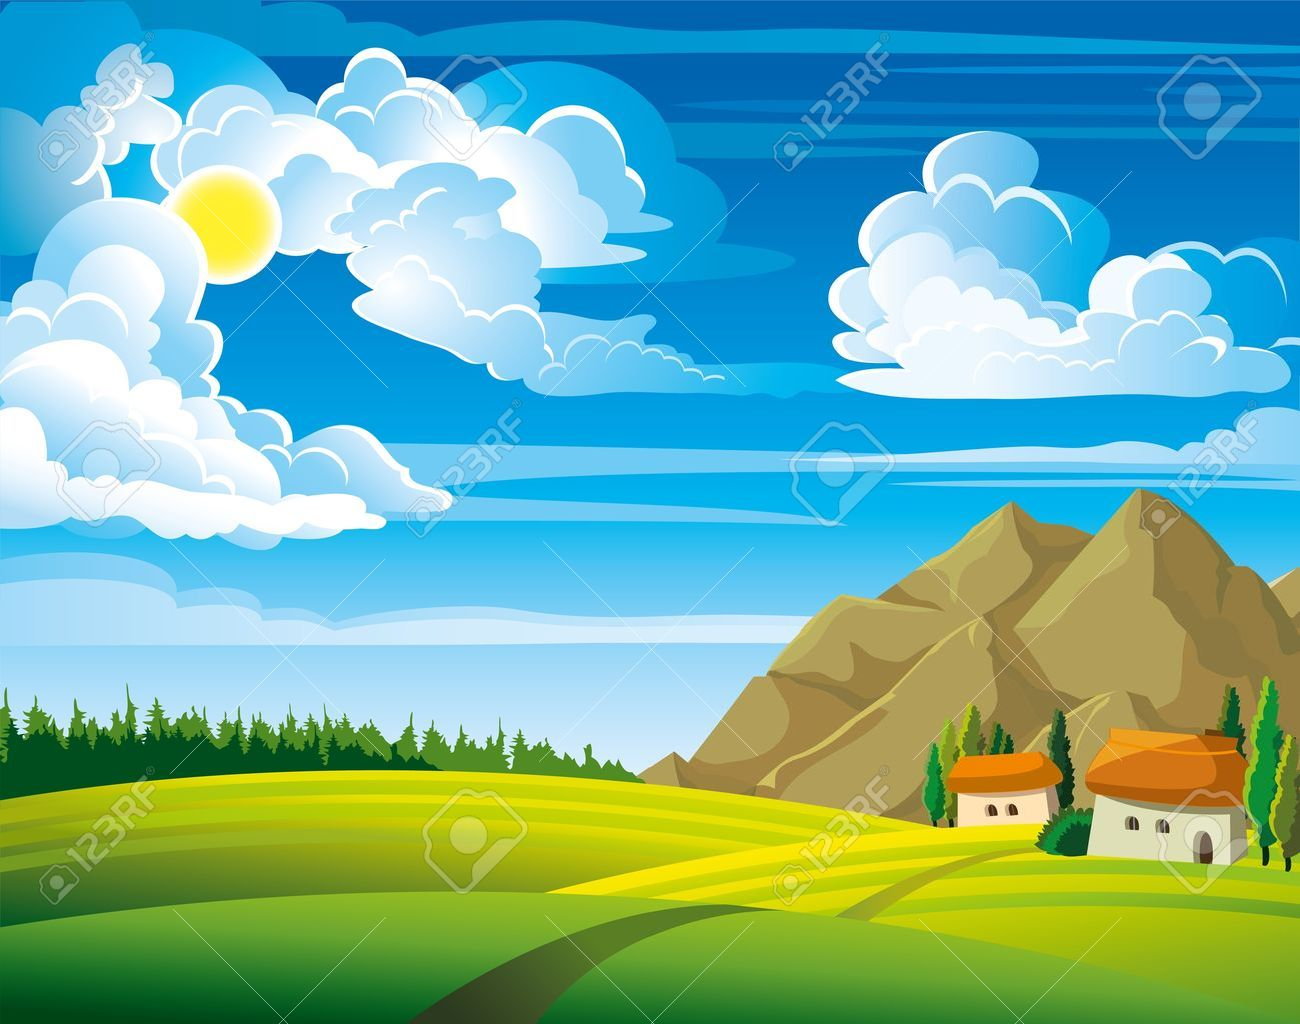 Summer green landscape with trees and houses on a blue cloudy sky background Stock Vector - 12816929